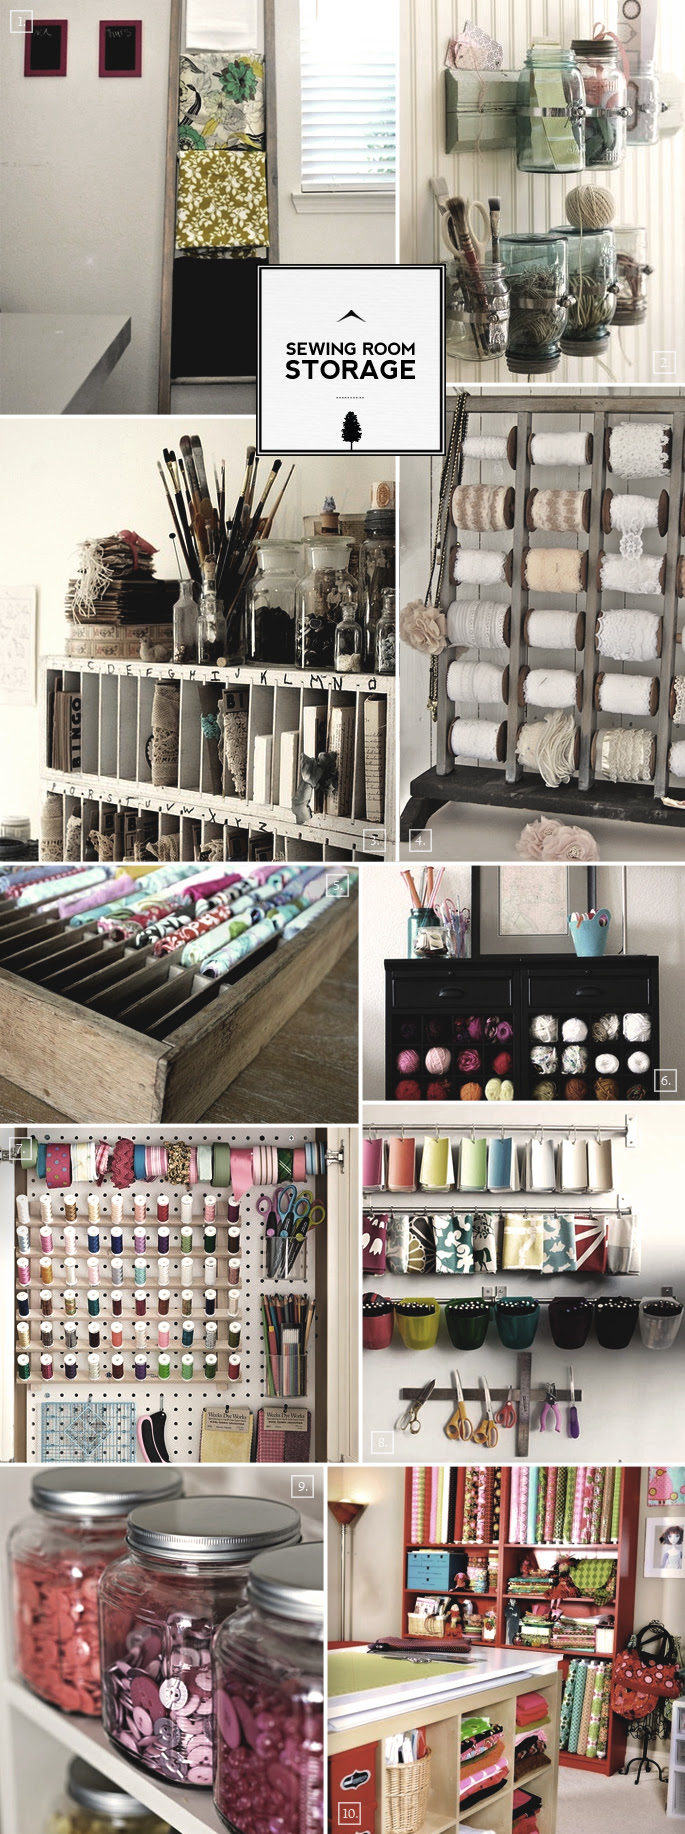 Sewing Room Organization Ideas: From Storage to Display ...